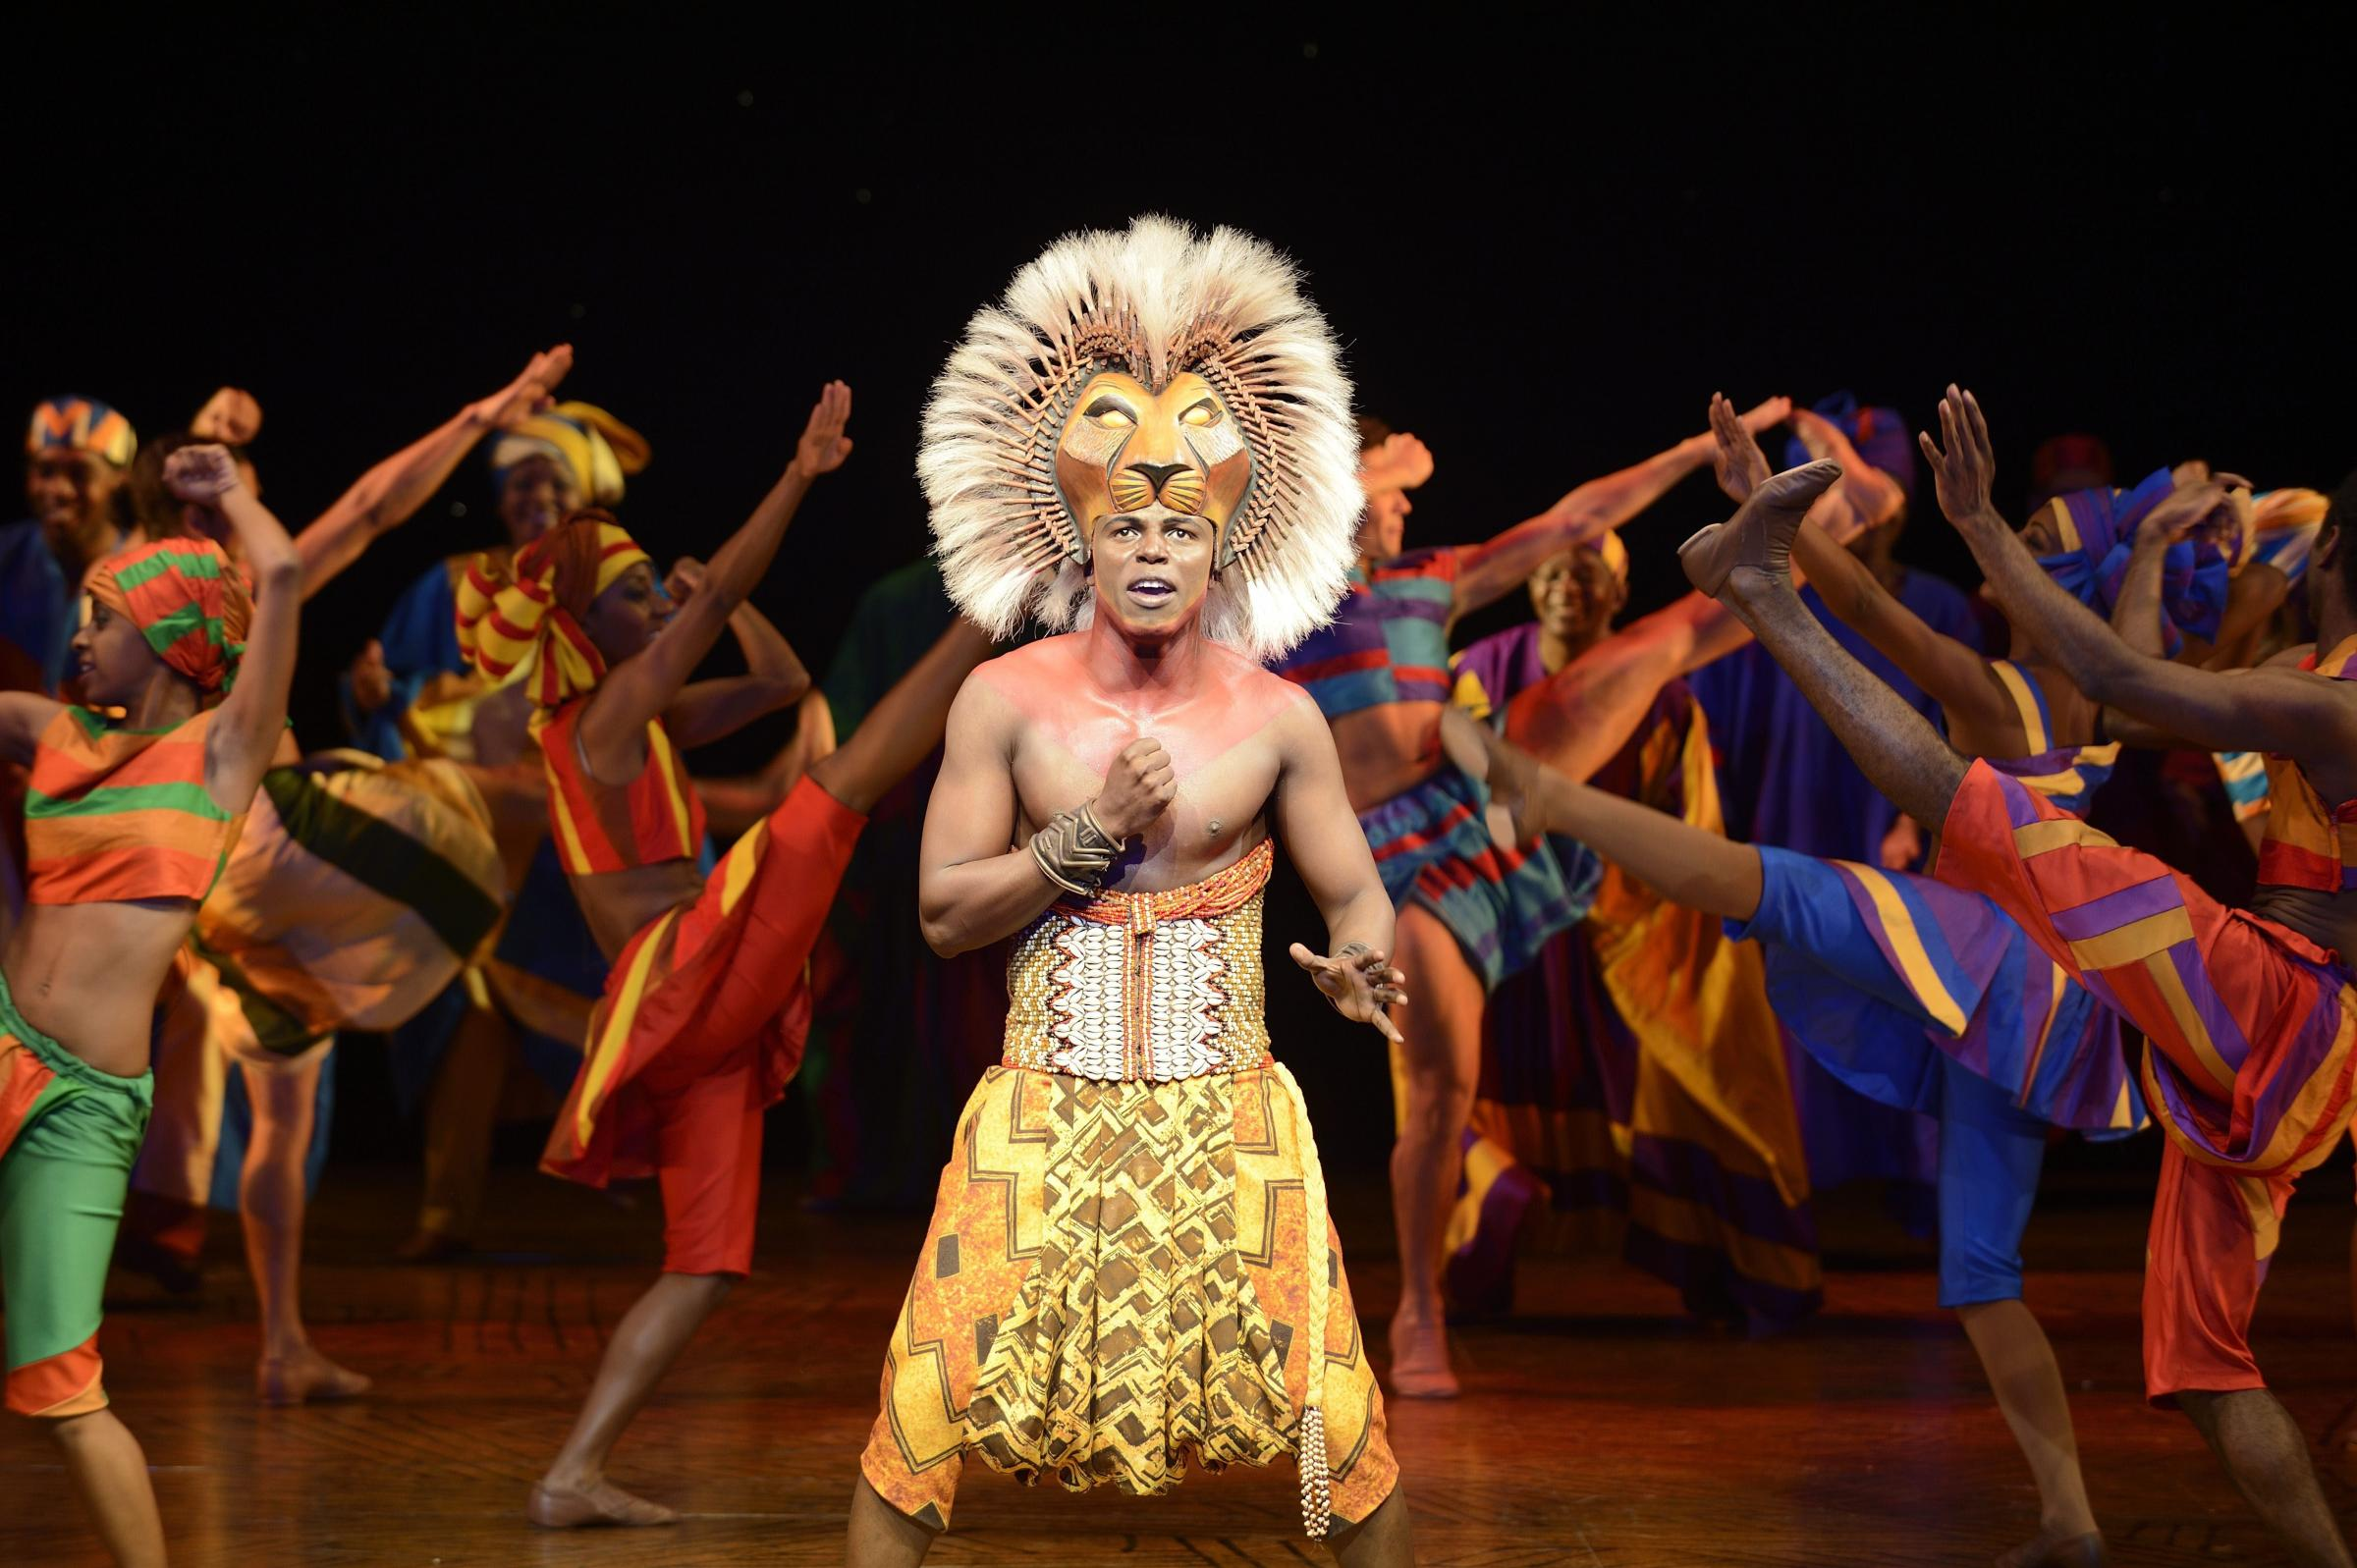 Nicholas Nkuna as Simba in The Lion King